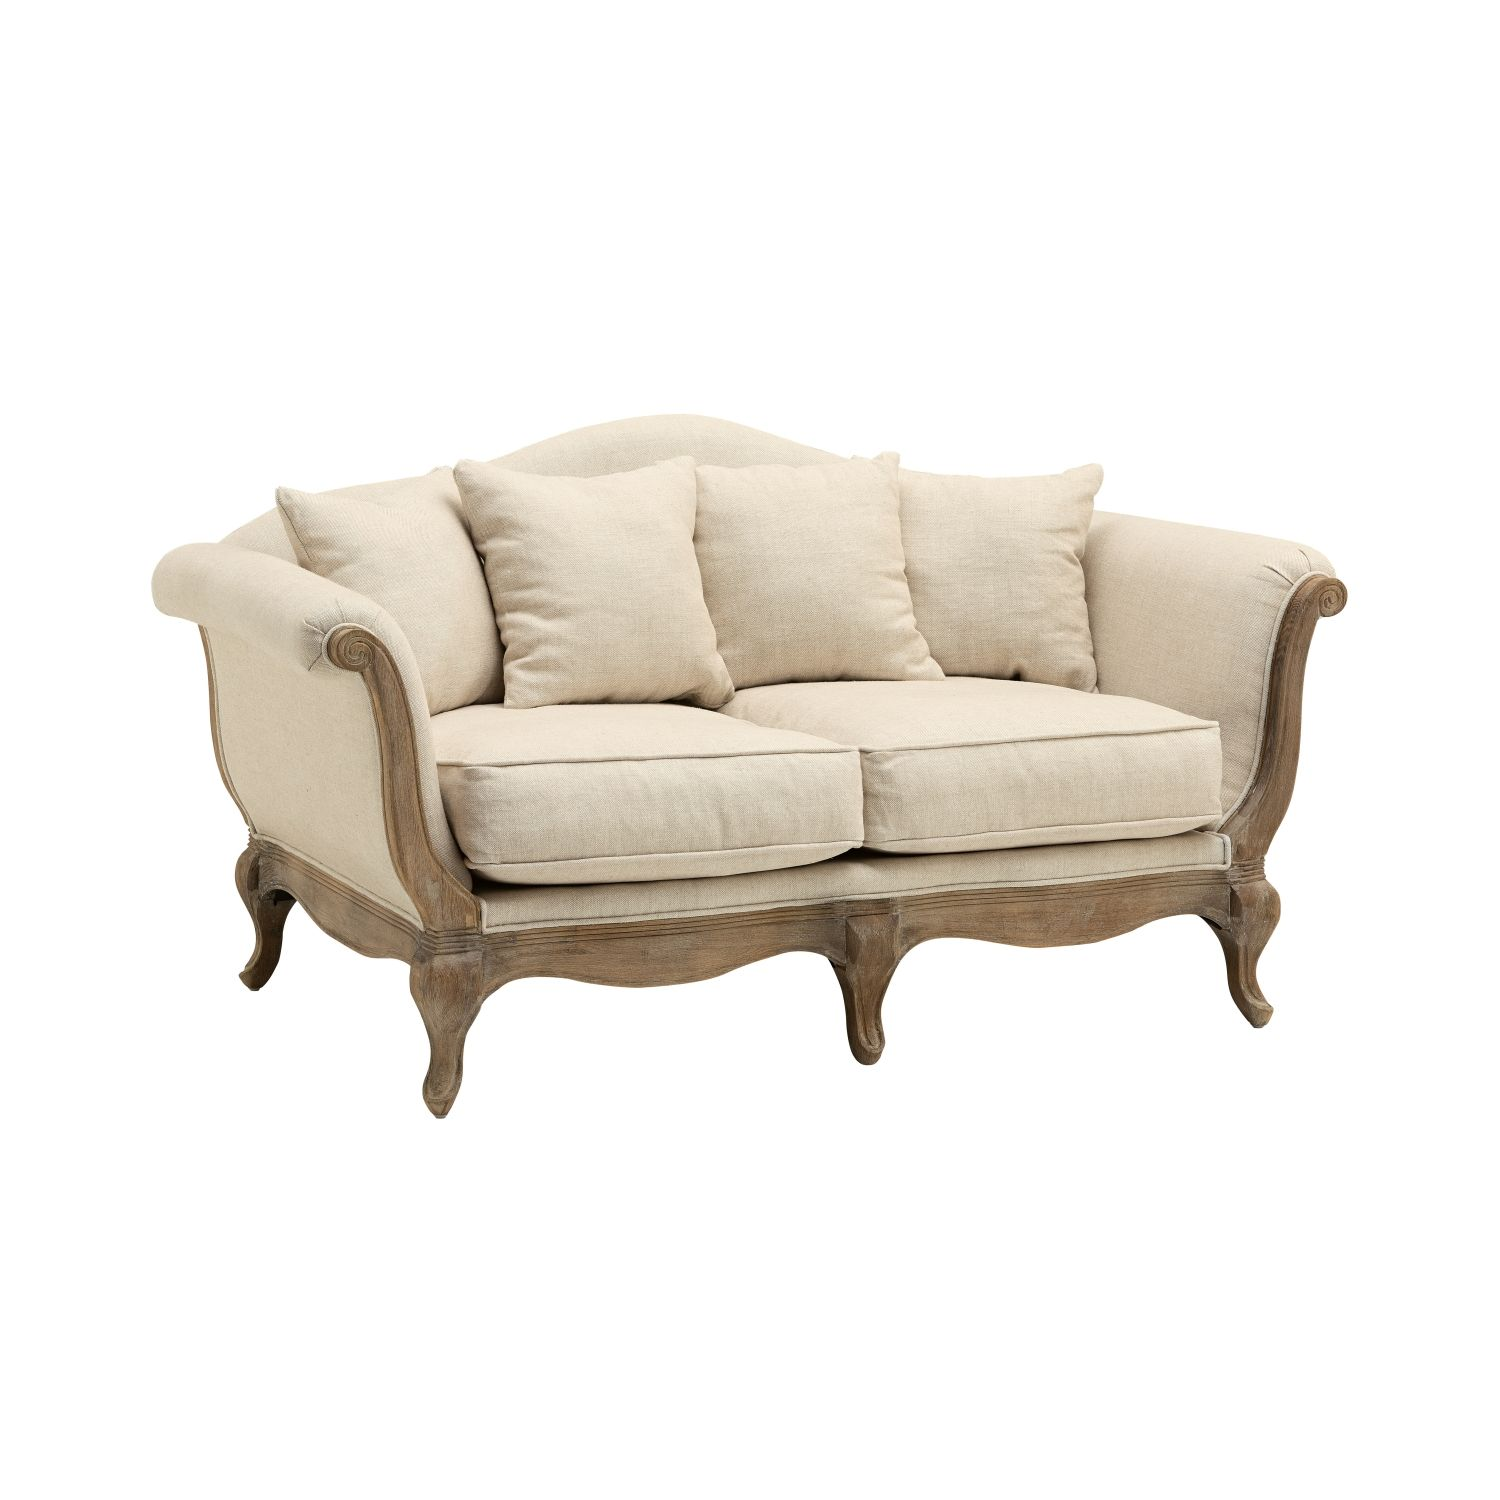 Country Style Maison 2 Seater Classic Fabric Sofa From